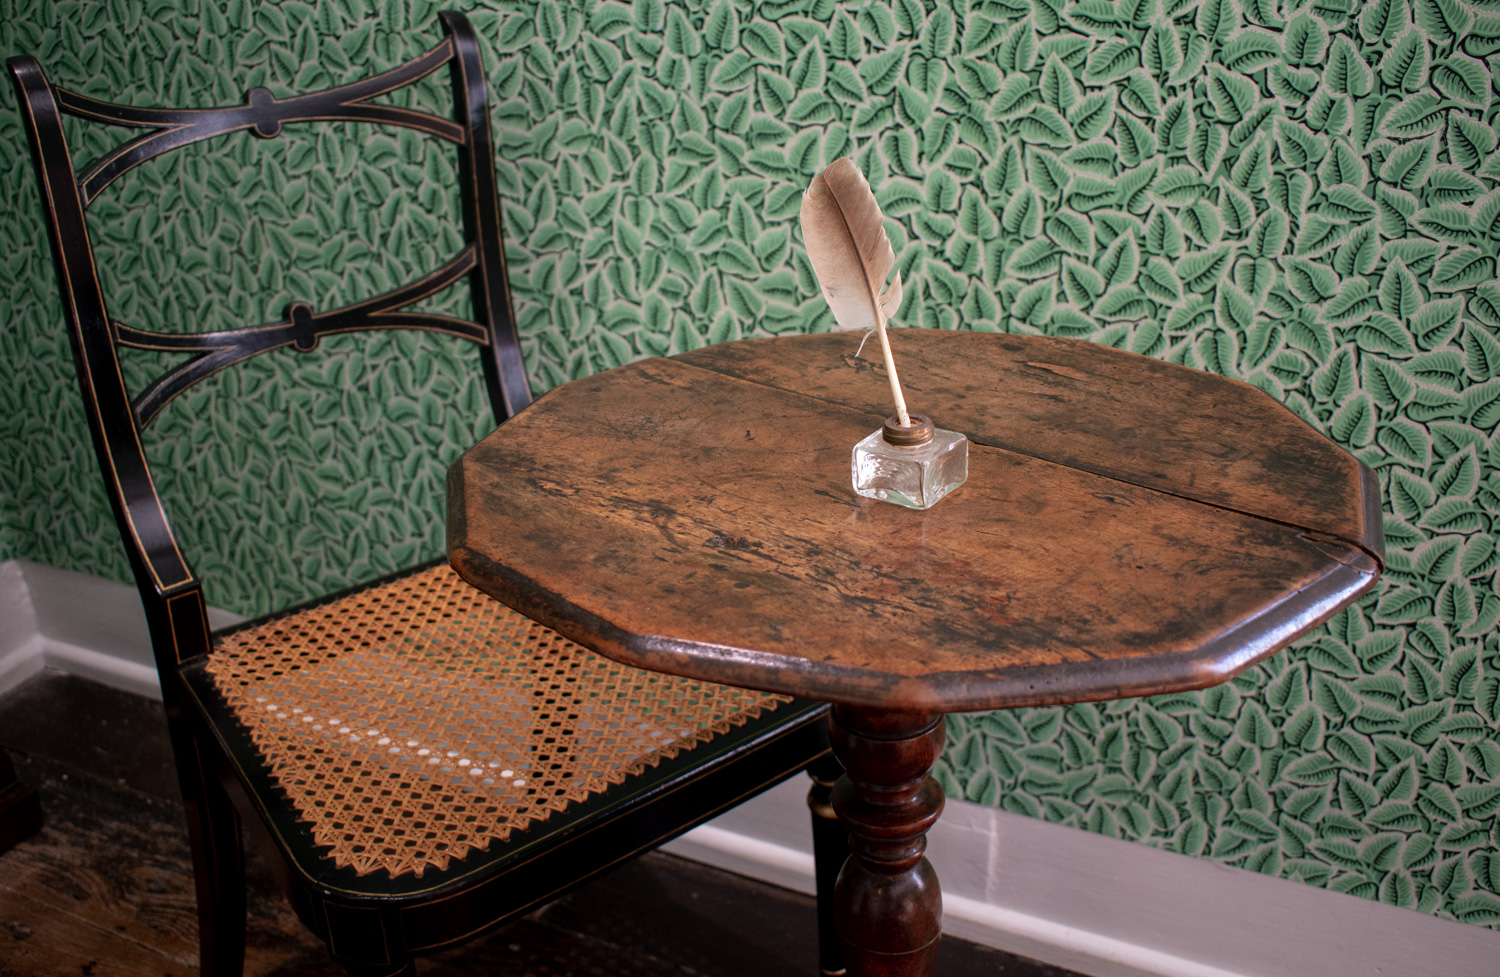 Jane Austen's writing table seen in the Dining Parlour at Jane Austen's House